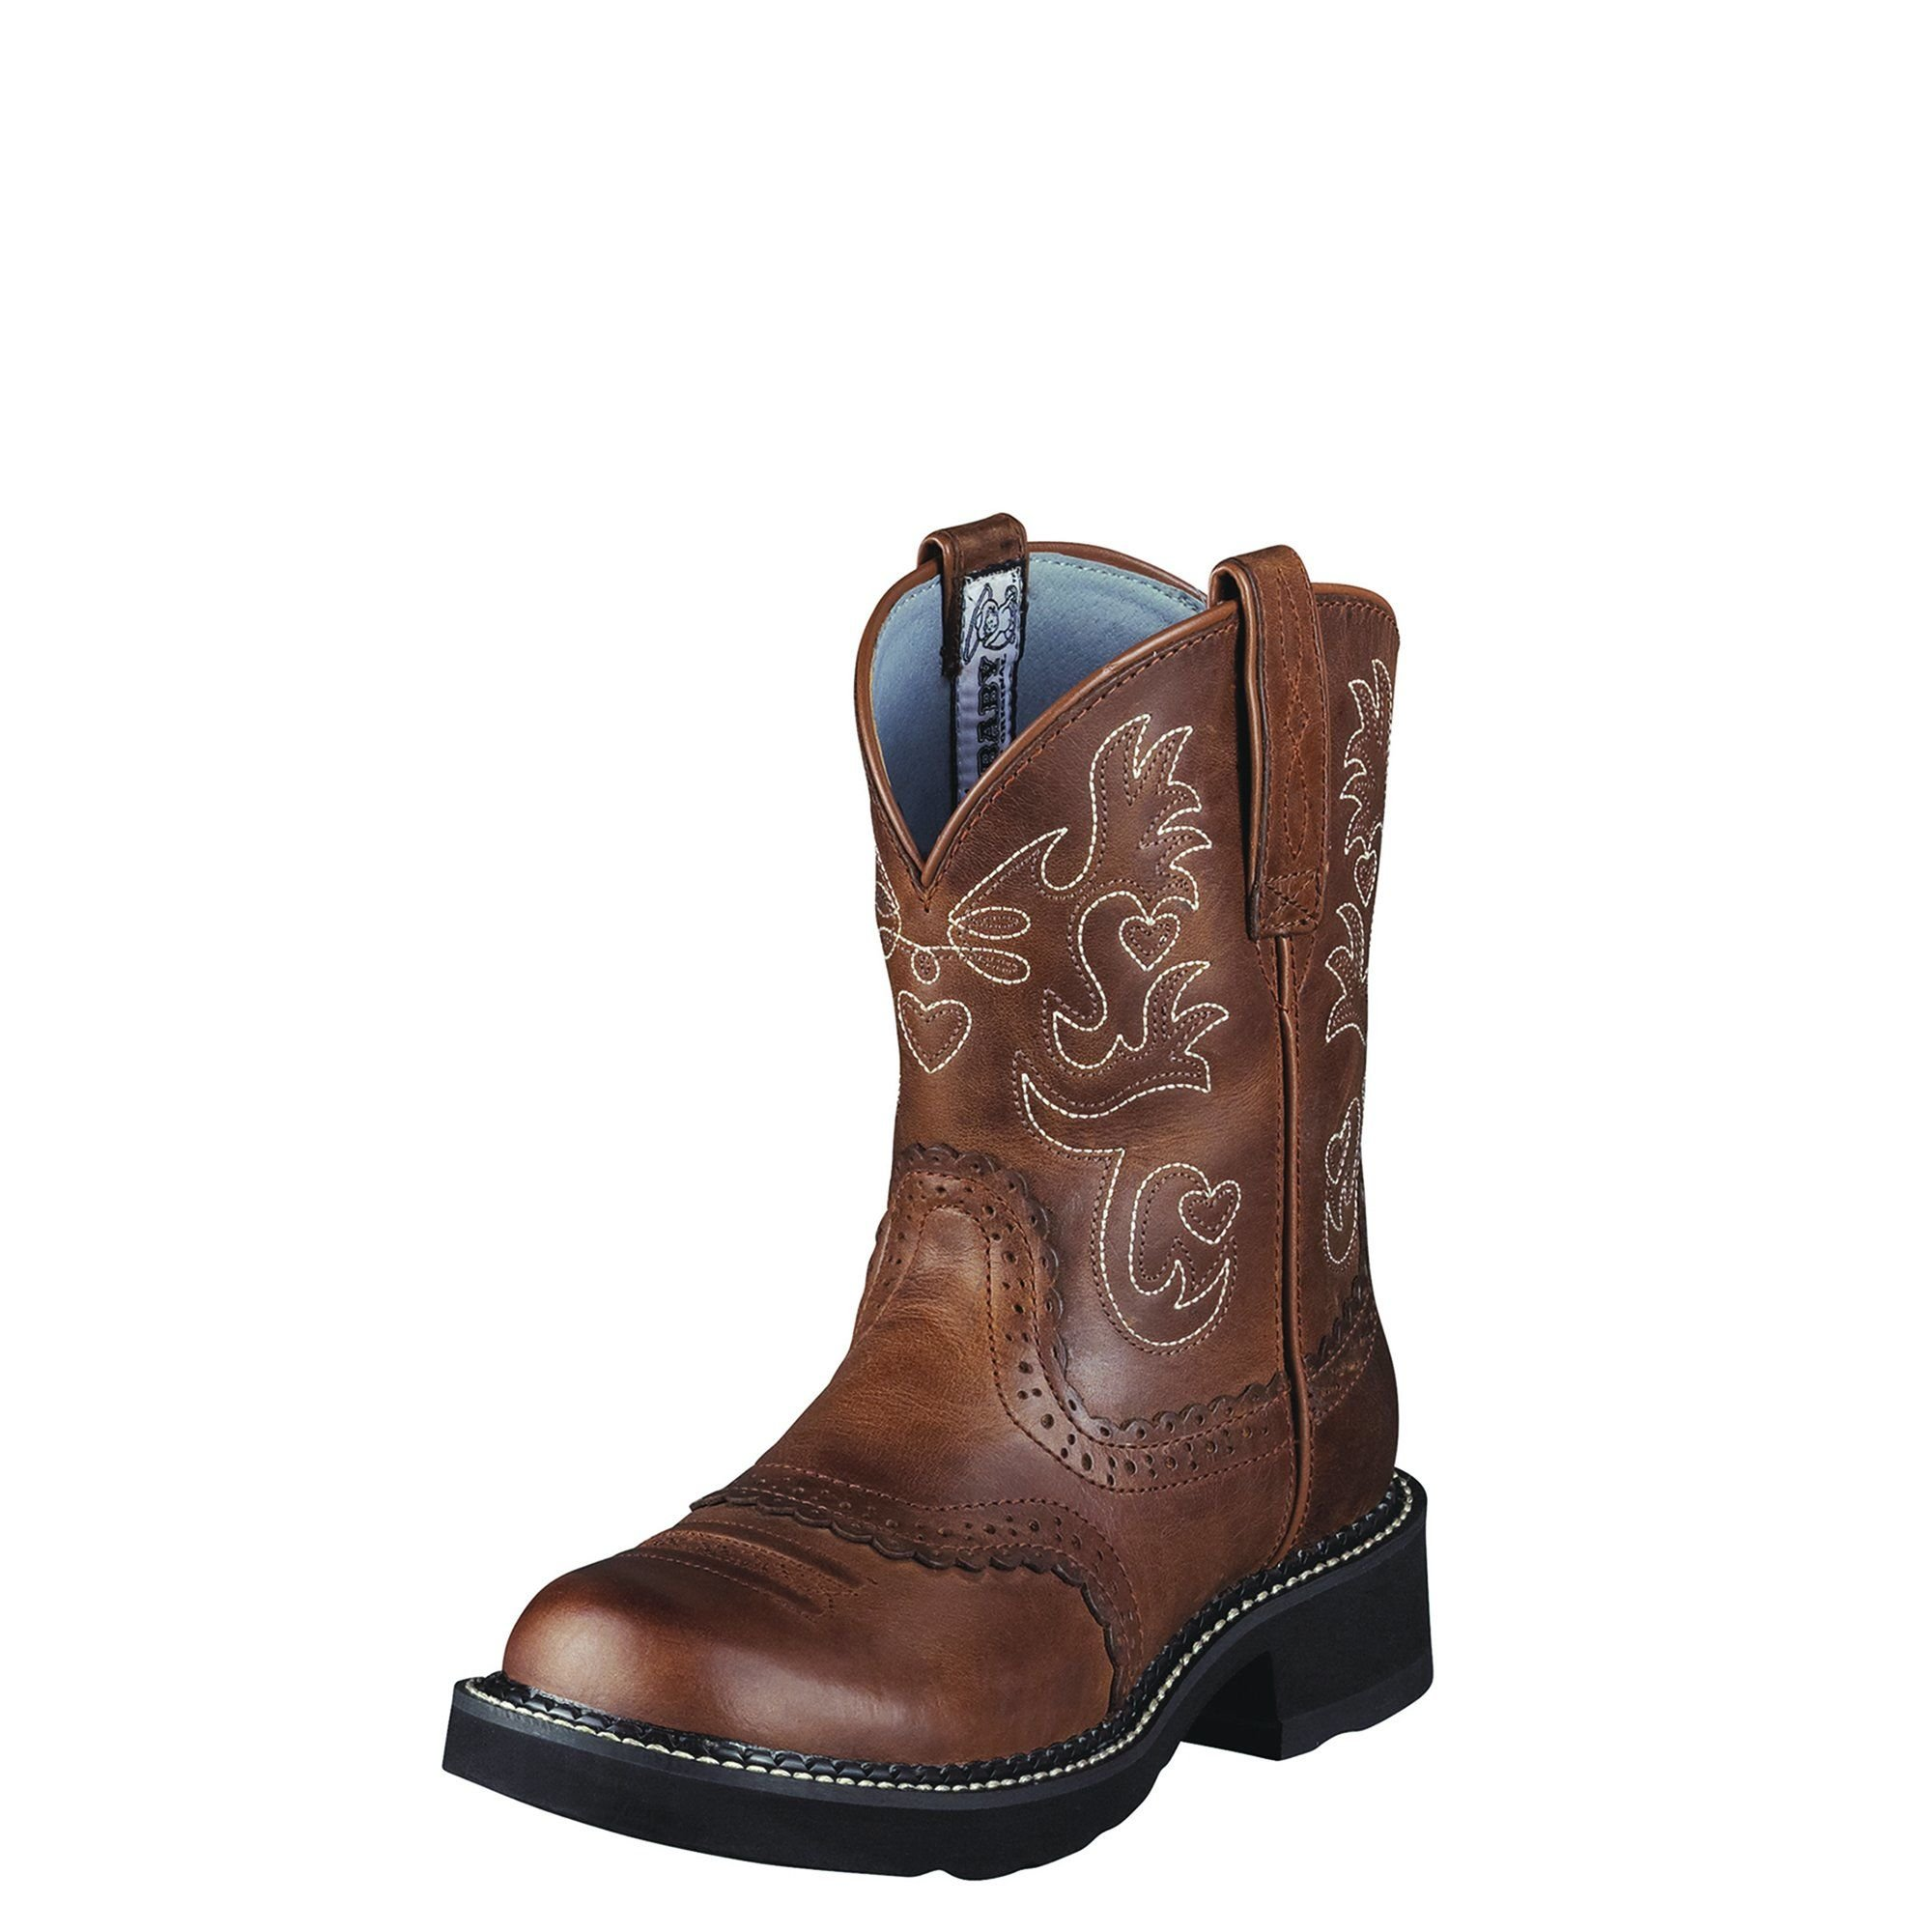 Ariat Women's Fatbaby Saddle Western Cowboy Boot, Russet REBEL, 8.5 B US